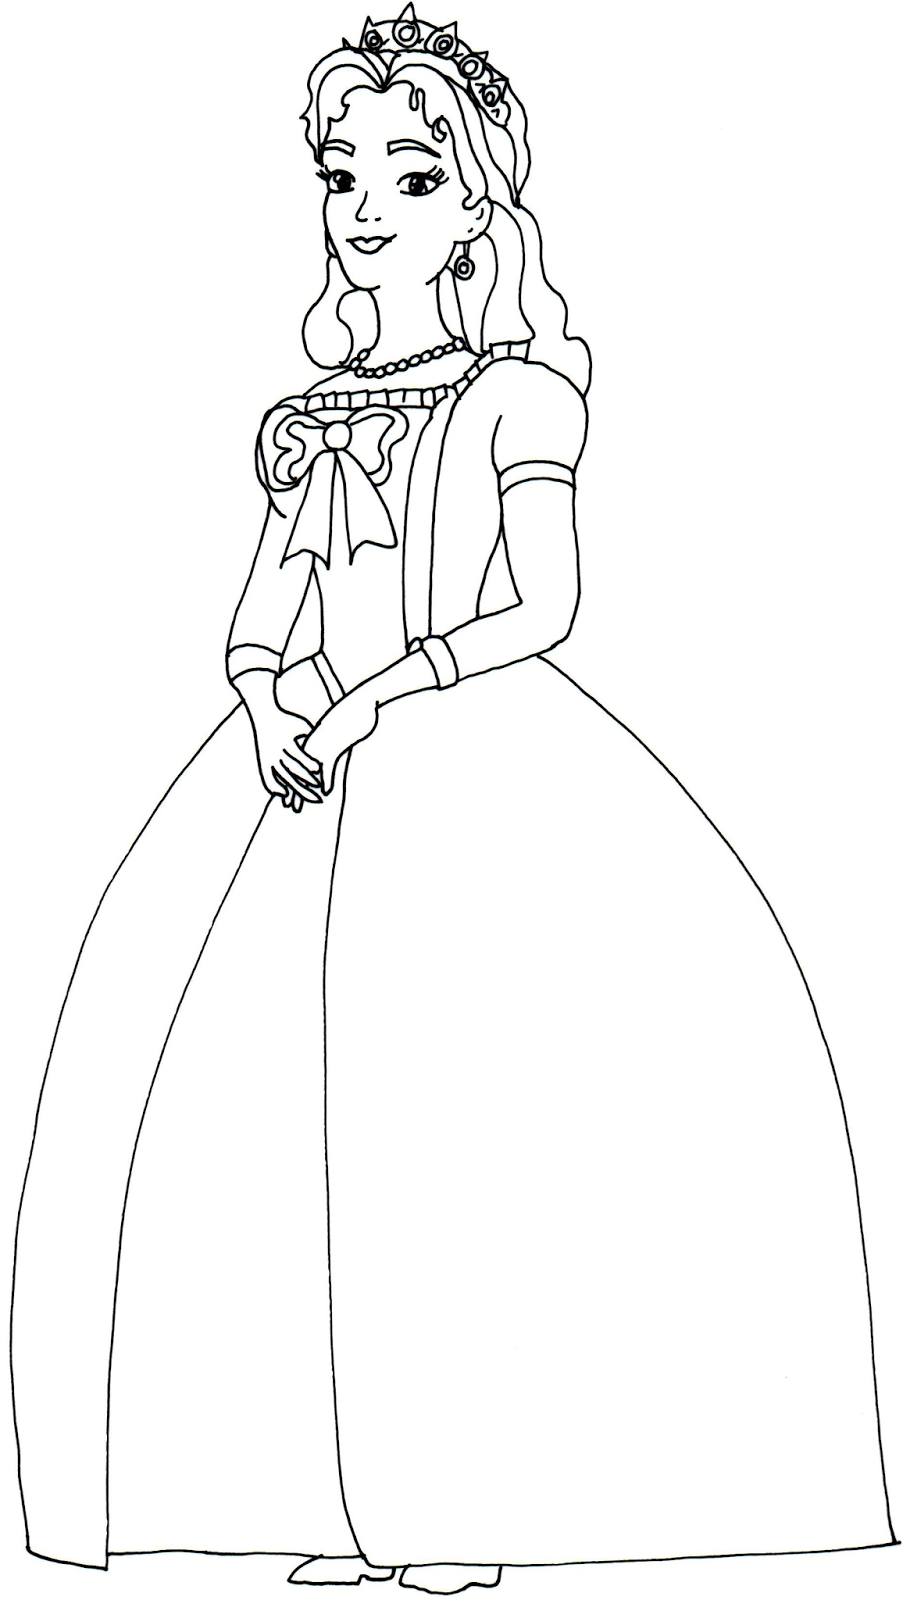 Queen Miranda Sofia The First Coloring Page Mom Coloring Pages Princess Coloring Pages Disney Coloring Pages